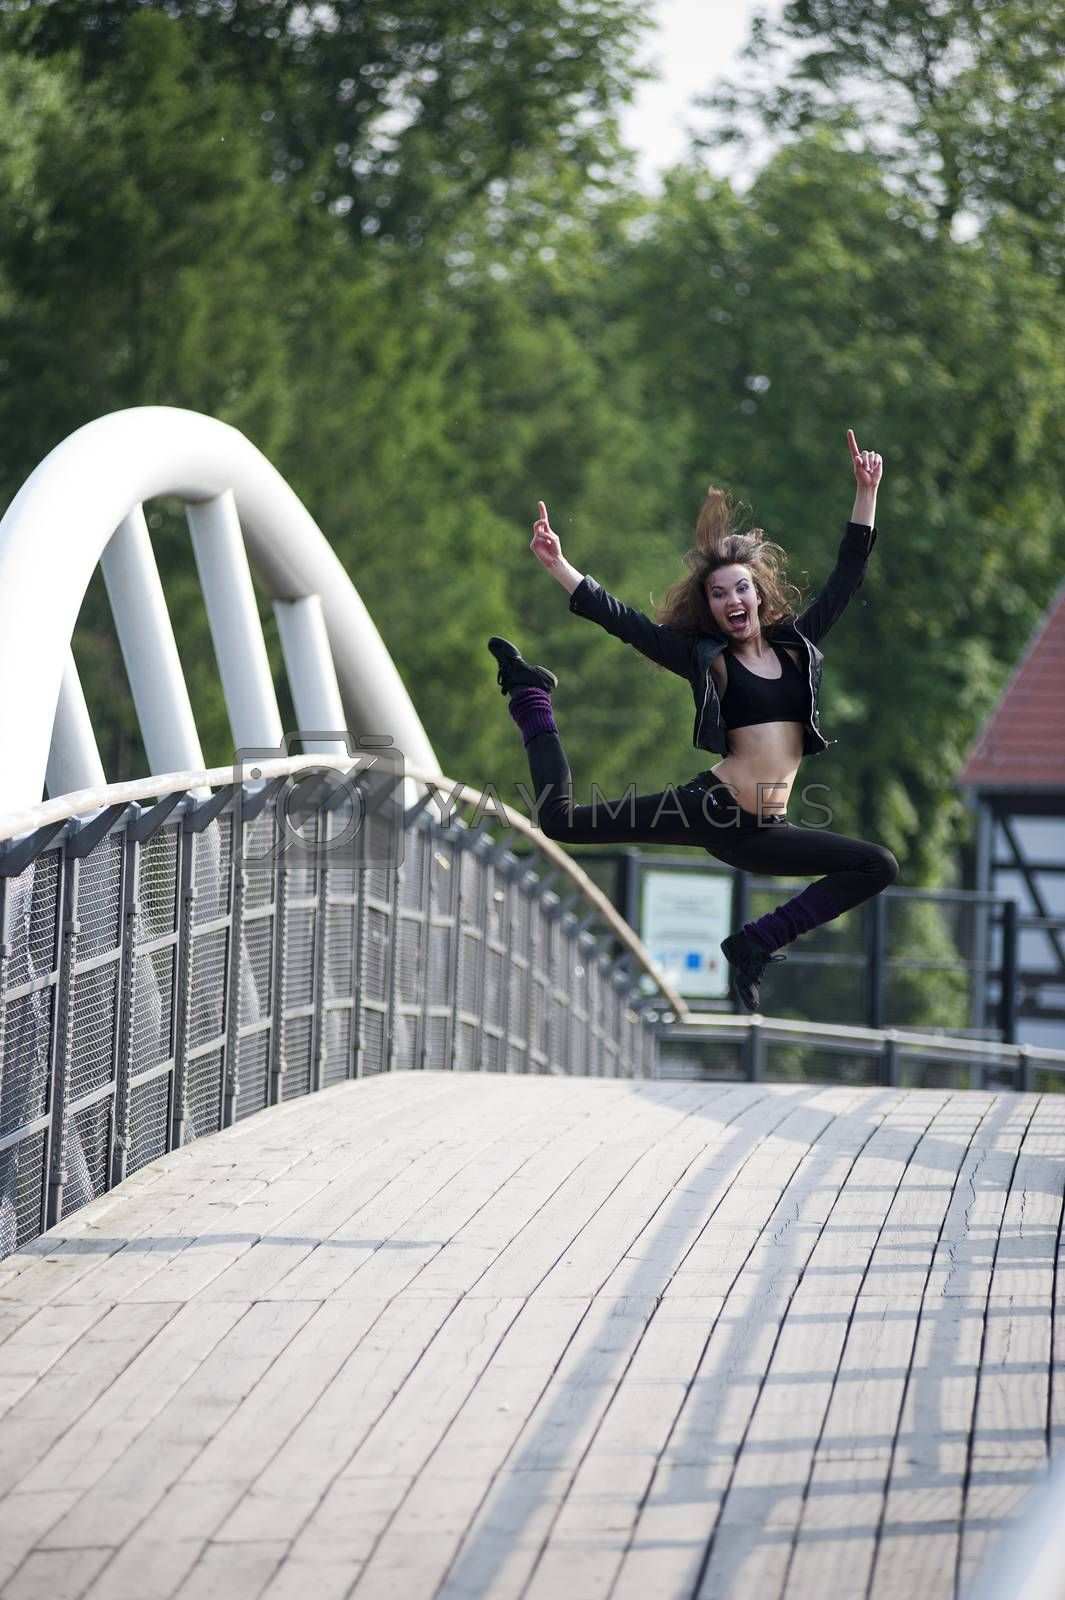 Royalty free image of woman happy and jumping by fotoCD